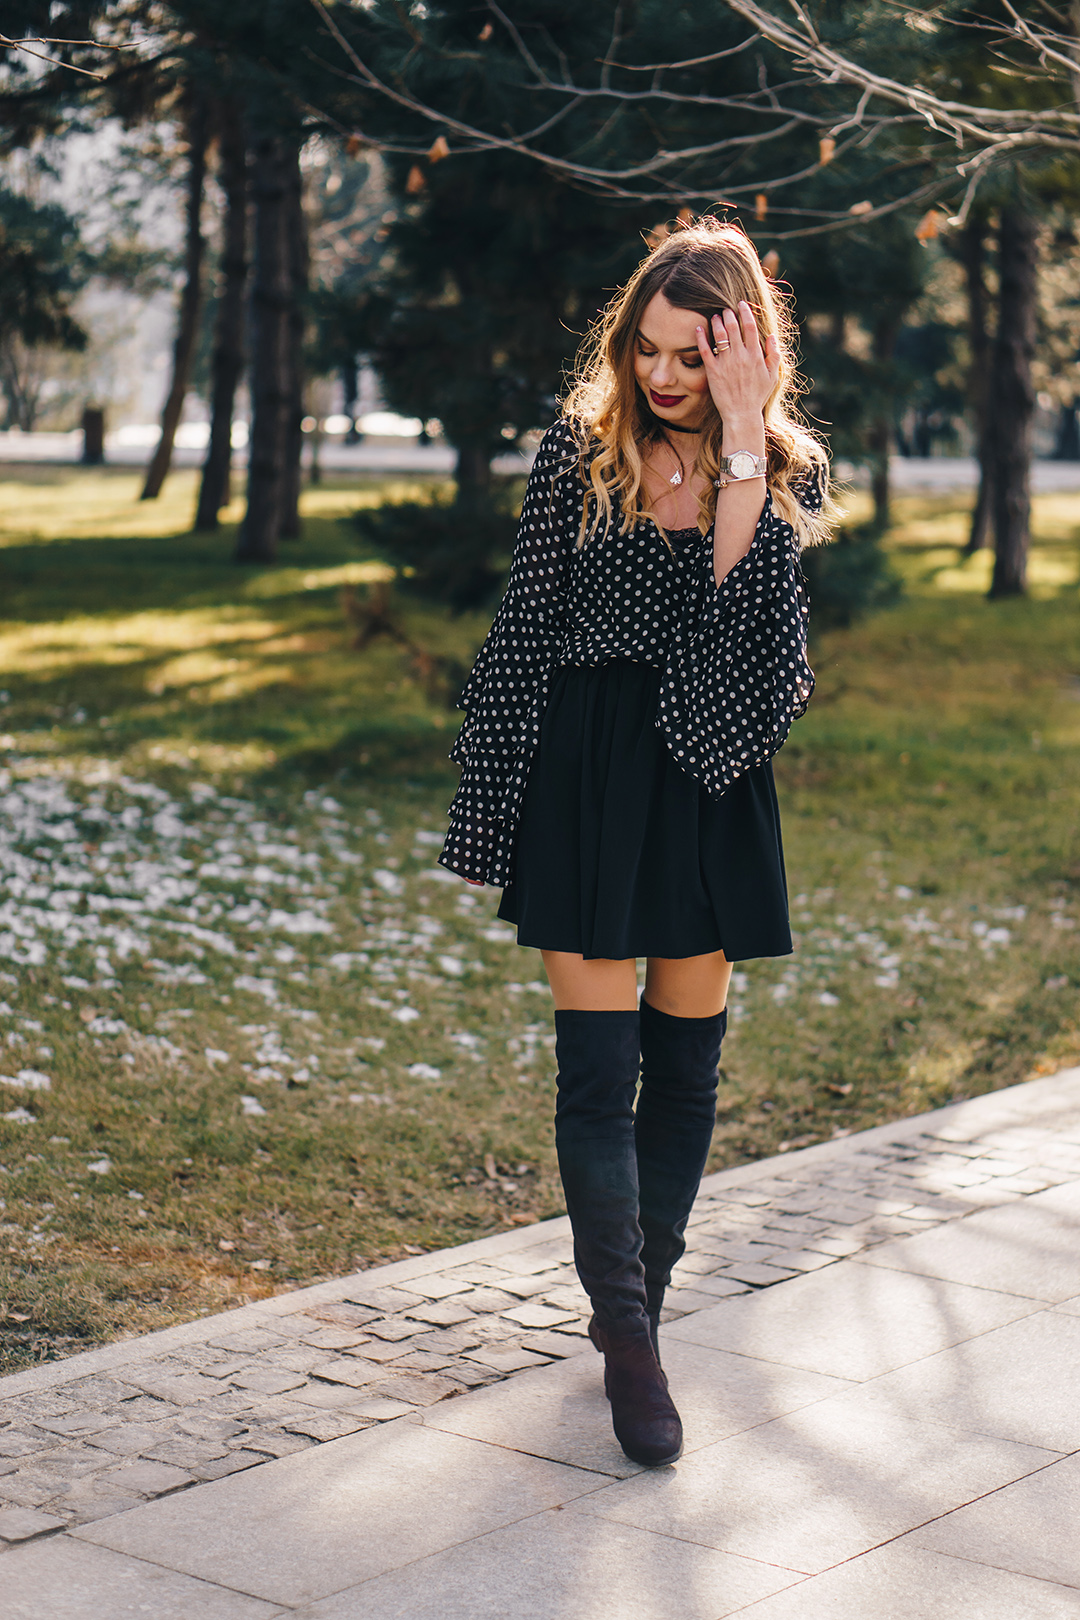 polka-dots-bell-sleeves-blouse-otk-boots-winter-outfit-2